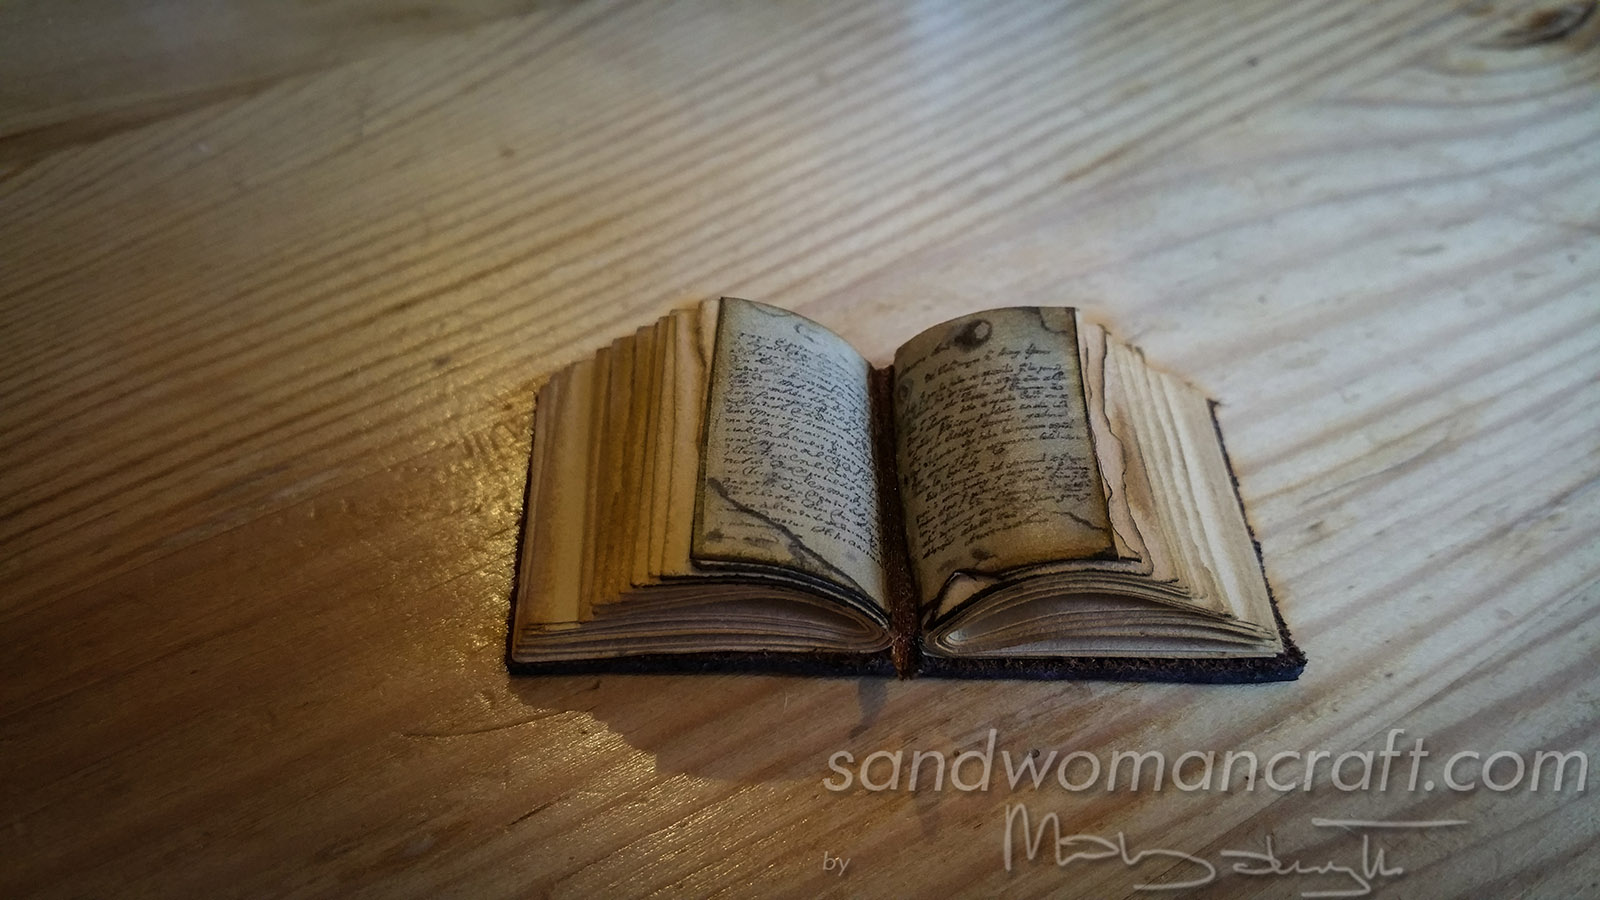 Miniature old thick leather book